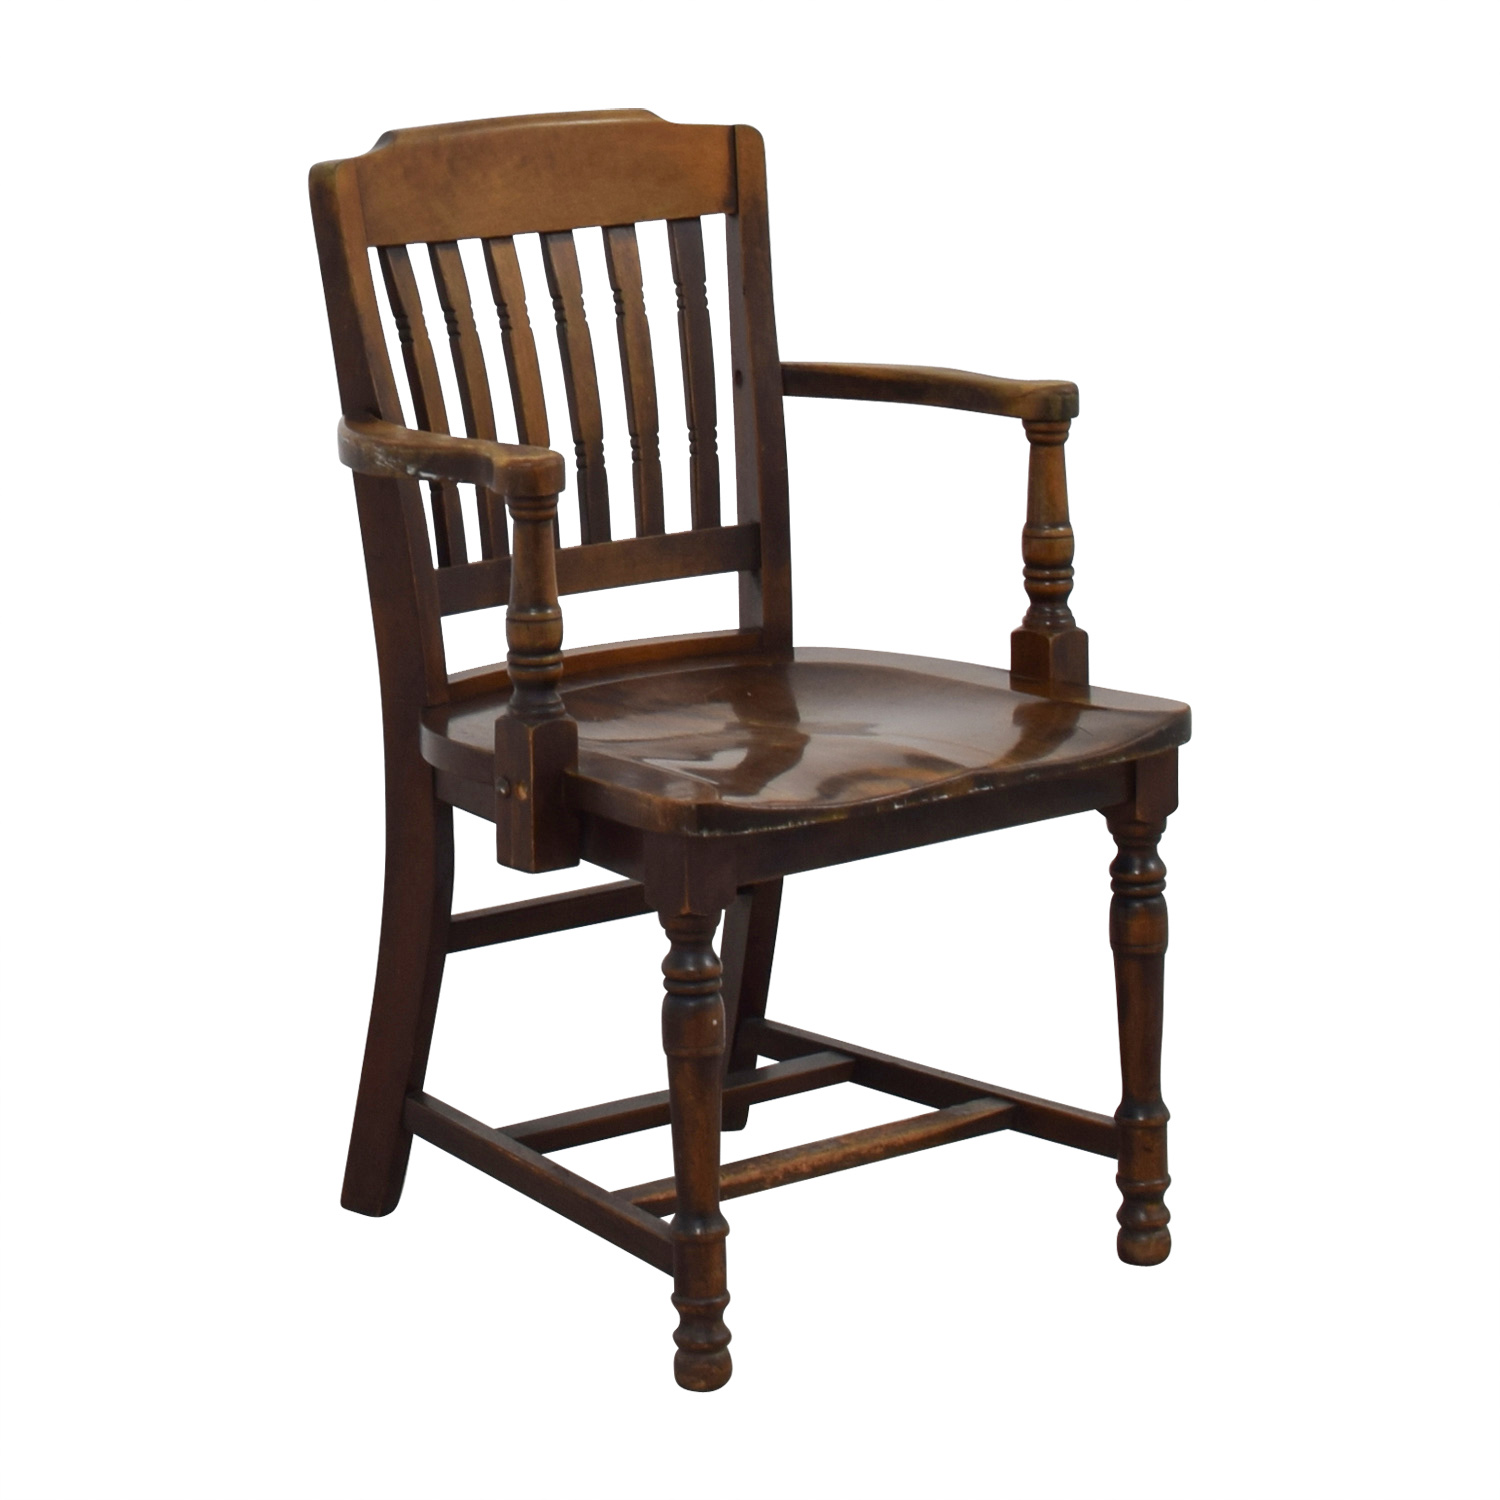 Antique Wood Spindel Chair / Chairs